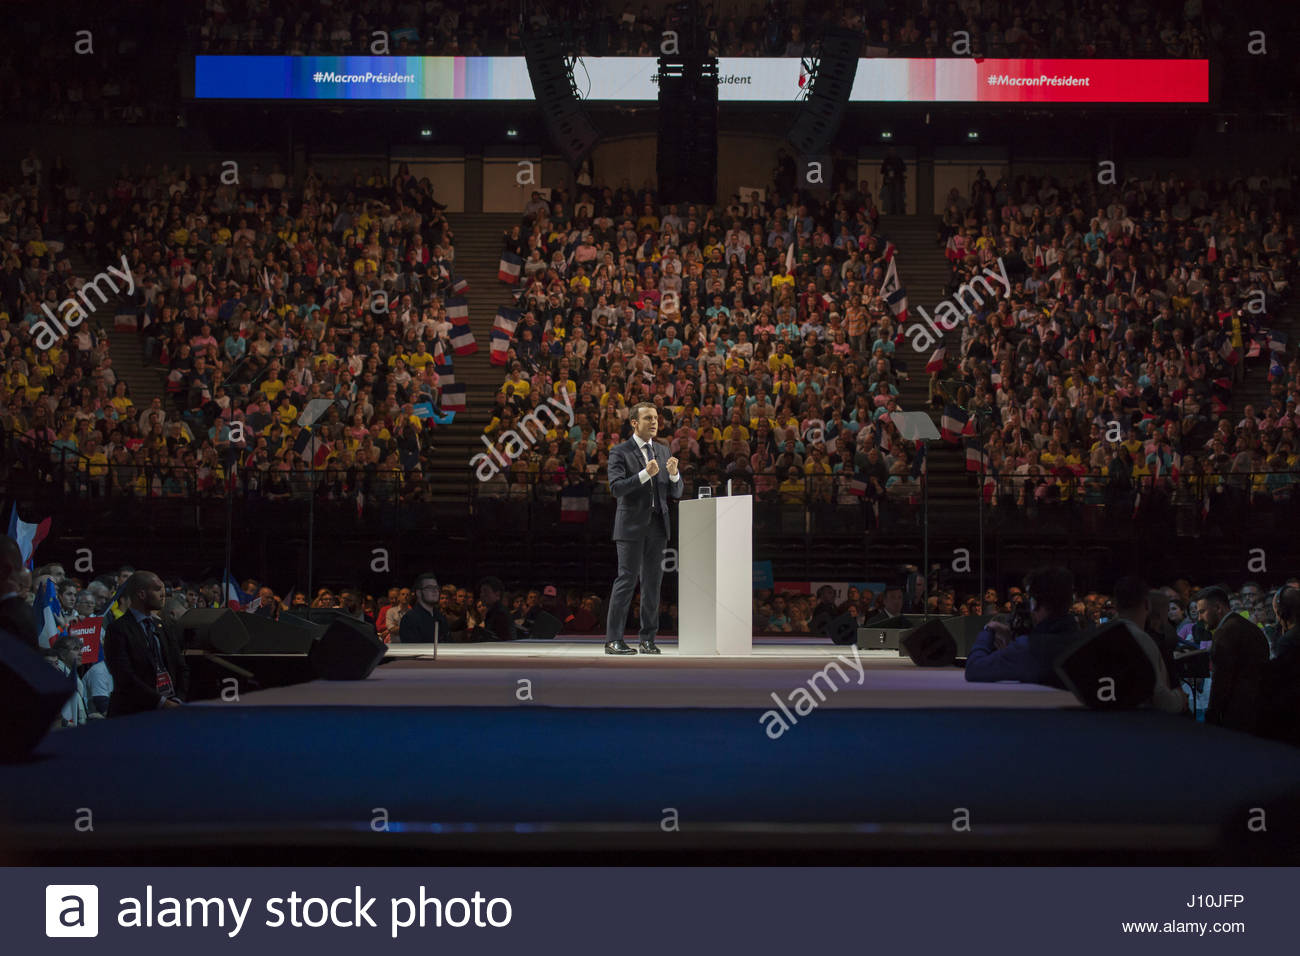 Paris, France. 17th Apr, 2017. French presidential candidate Emmanuel Macron delivers a speech during a campaign - Stock Image